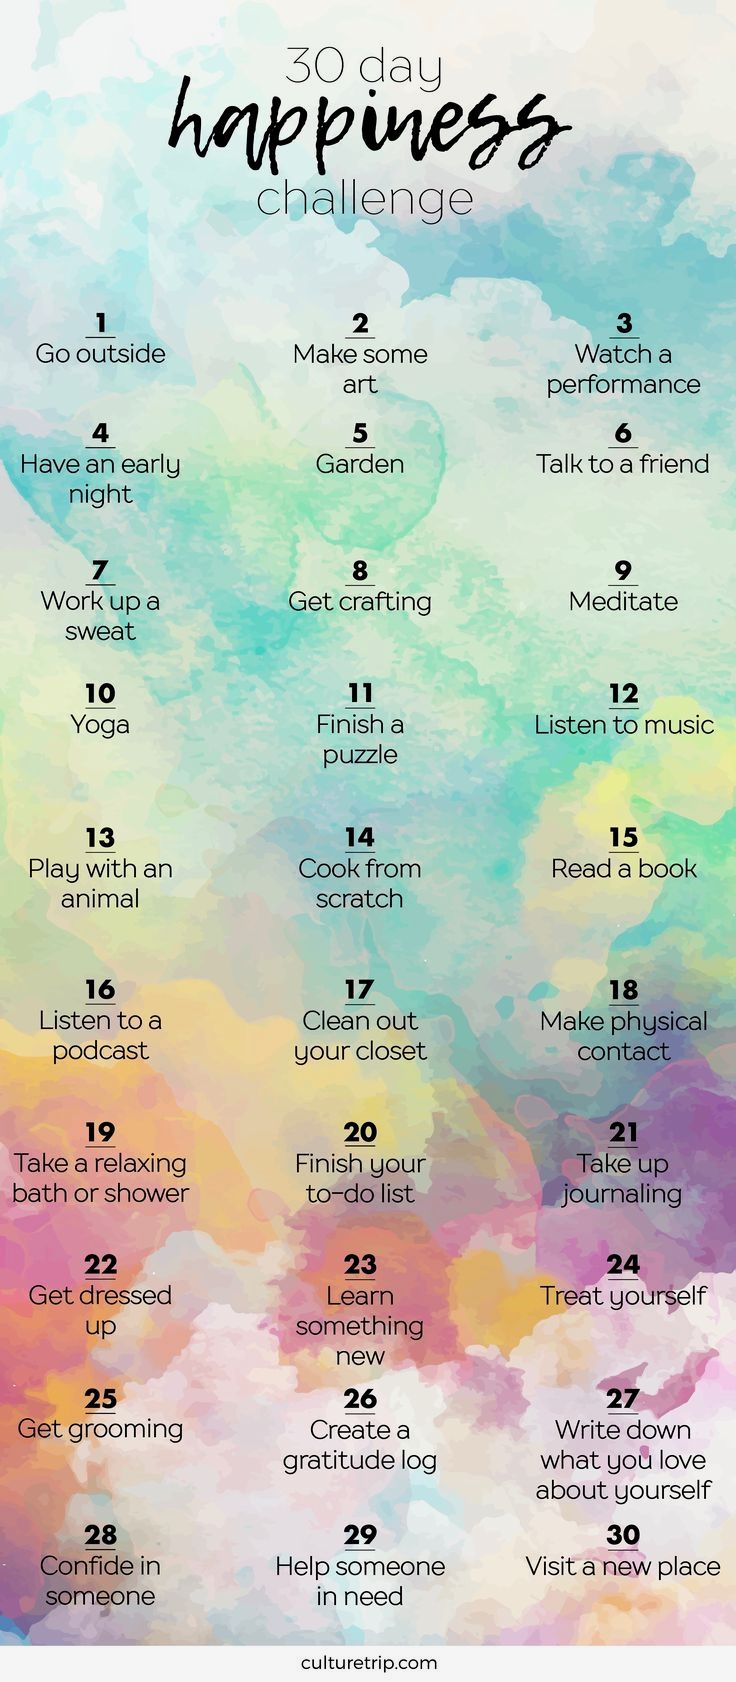 The 30 Day Happiness  The 30 Day Happiness Challenge  https://www.pinterest.com/pin/503488433327551314/